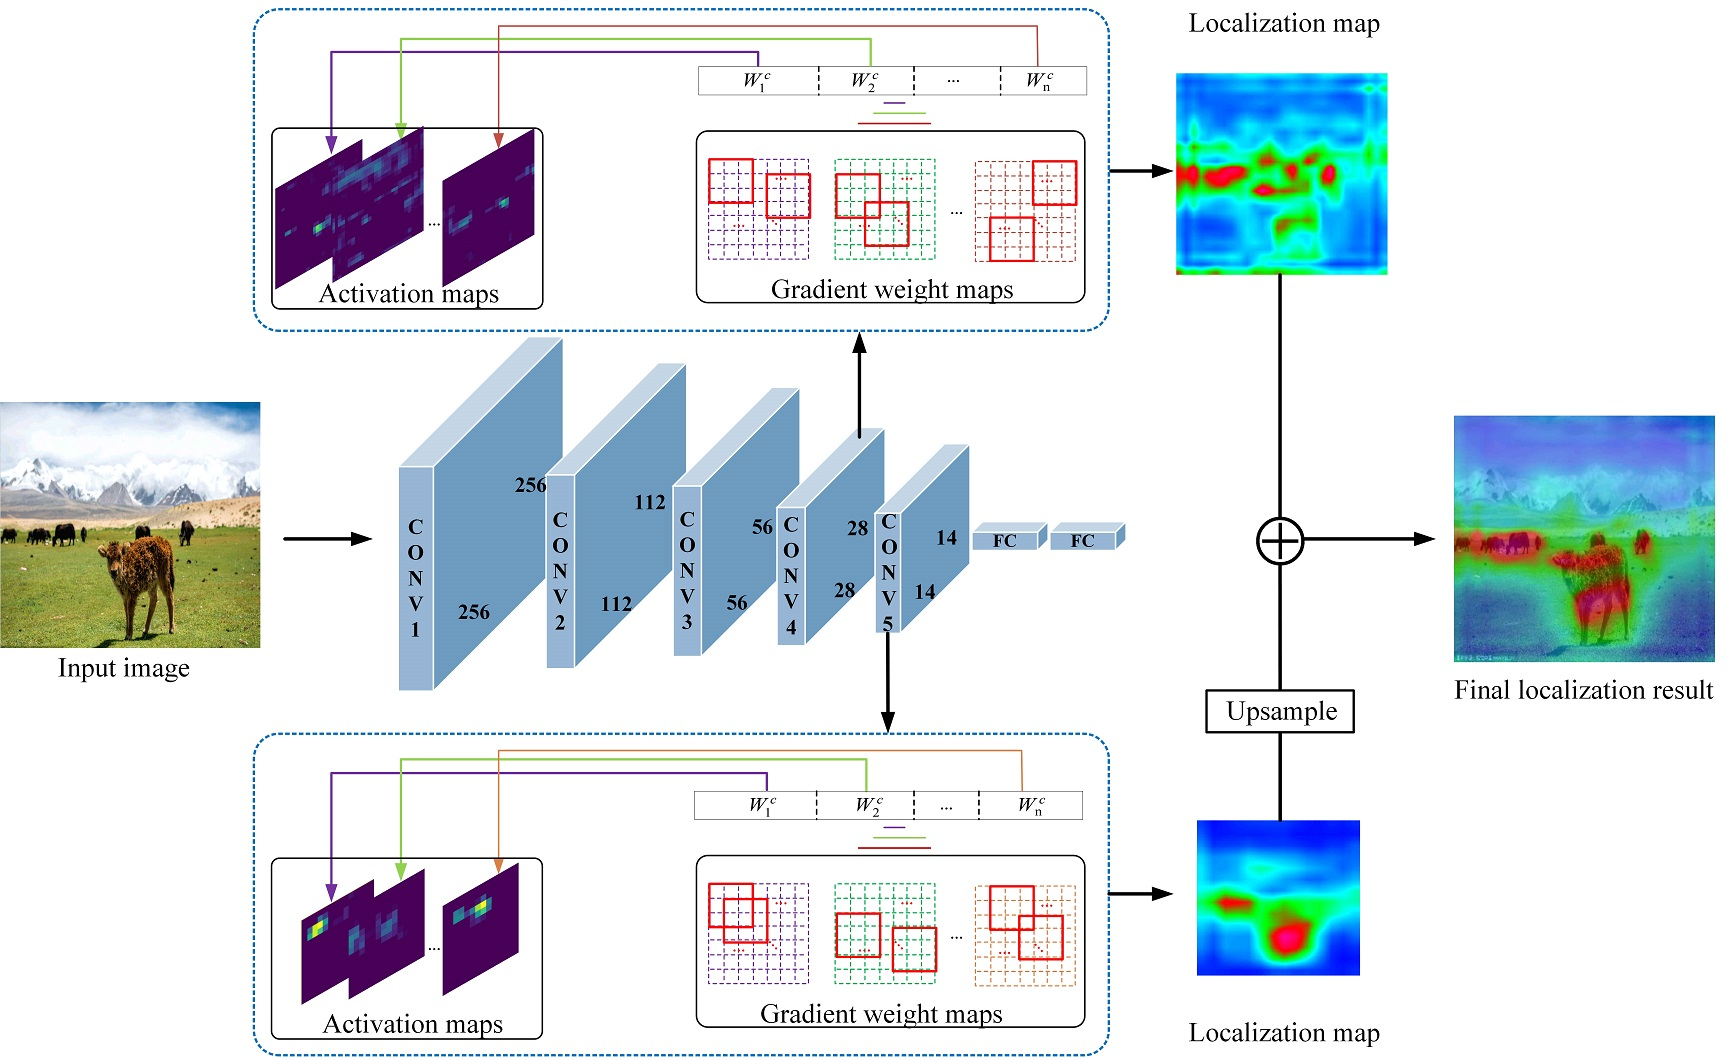 The overview of our multi-scale discriminative region discovery method for weakly-supervised object localization. Based on existing classification network, such as VGGnet, we firstly compute the gradient weight maps by taking partial derivative of particular class score to the activation maps. Then a discriminative region discovery strategy is applied to generate corresponding localization maps from different convolutional layers (conv4 and conv5). Finally, multi-scale localization maps are fused into more integral one to locate multiple objects of various sizes.